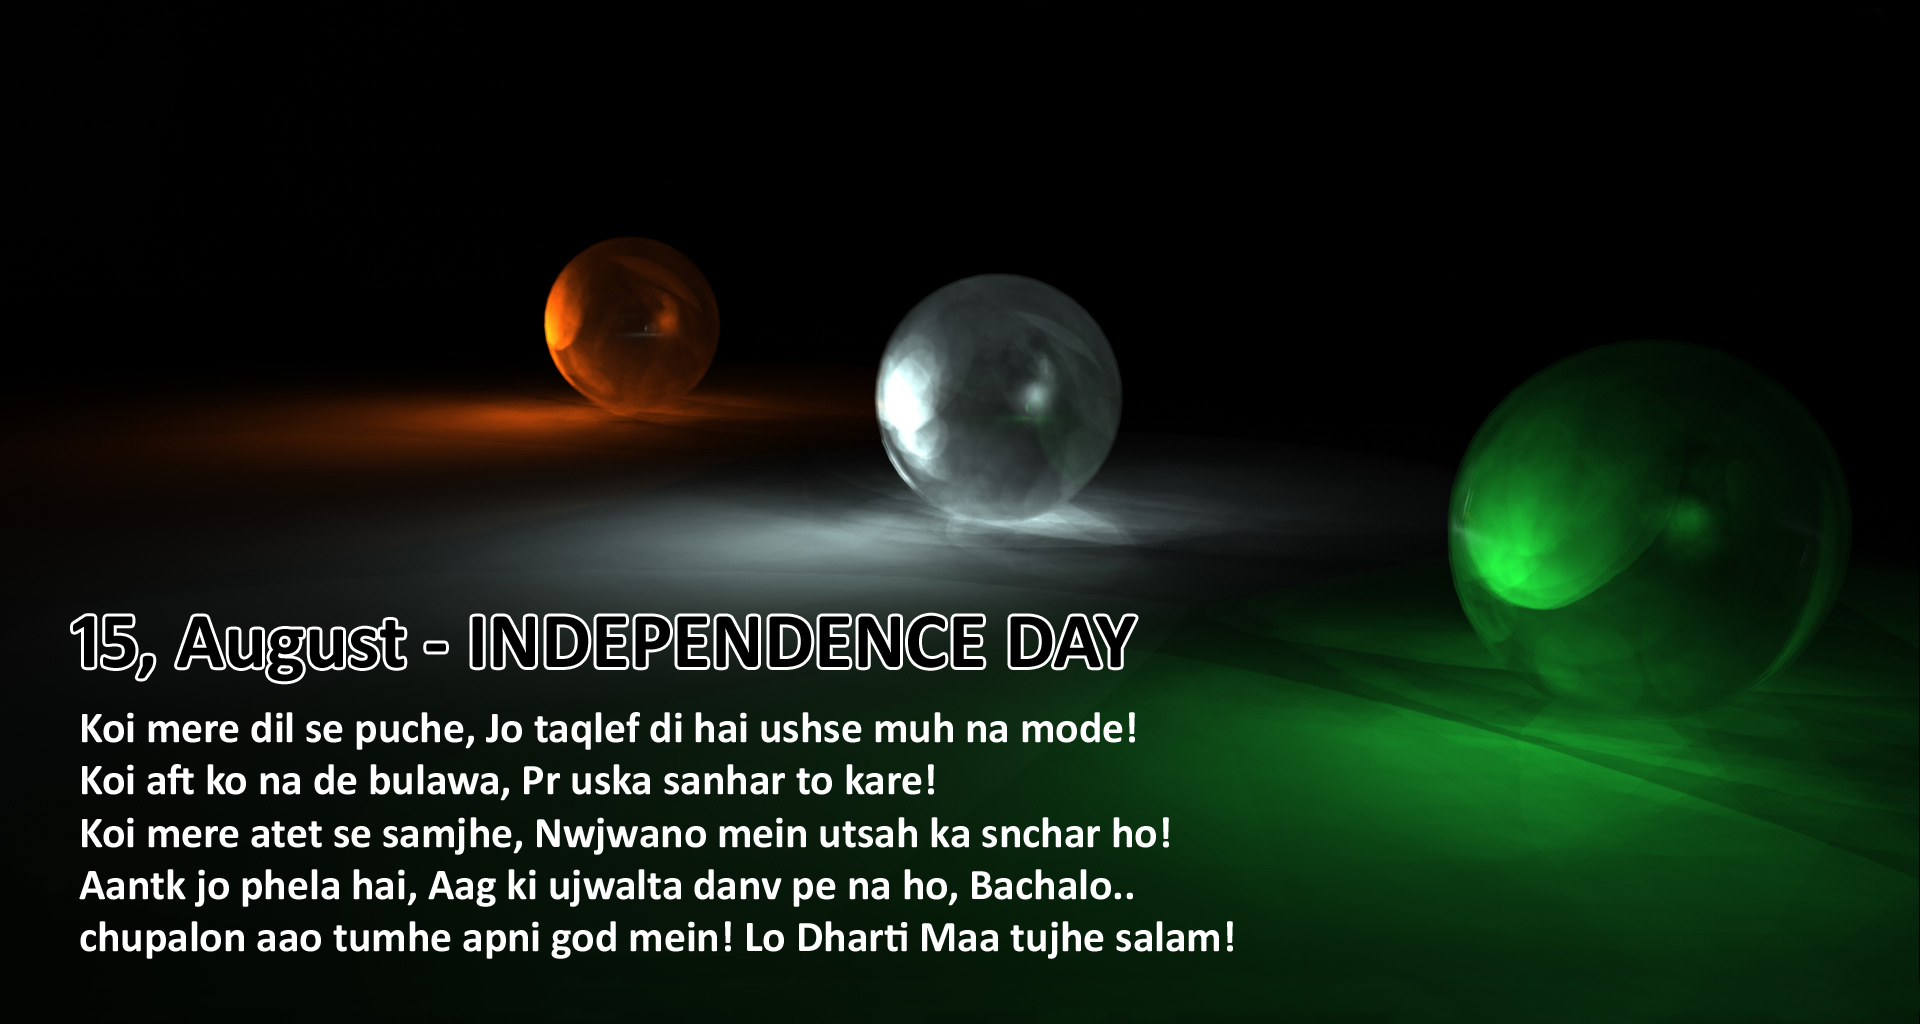 Independence Day quote #2